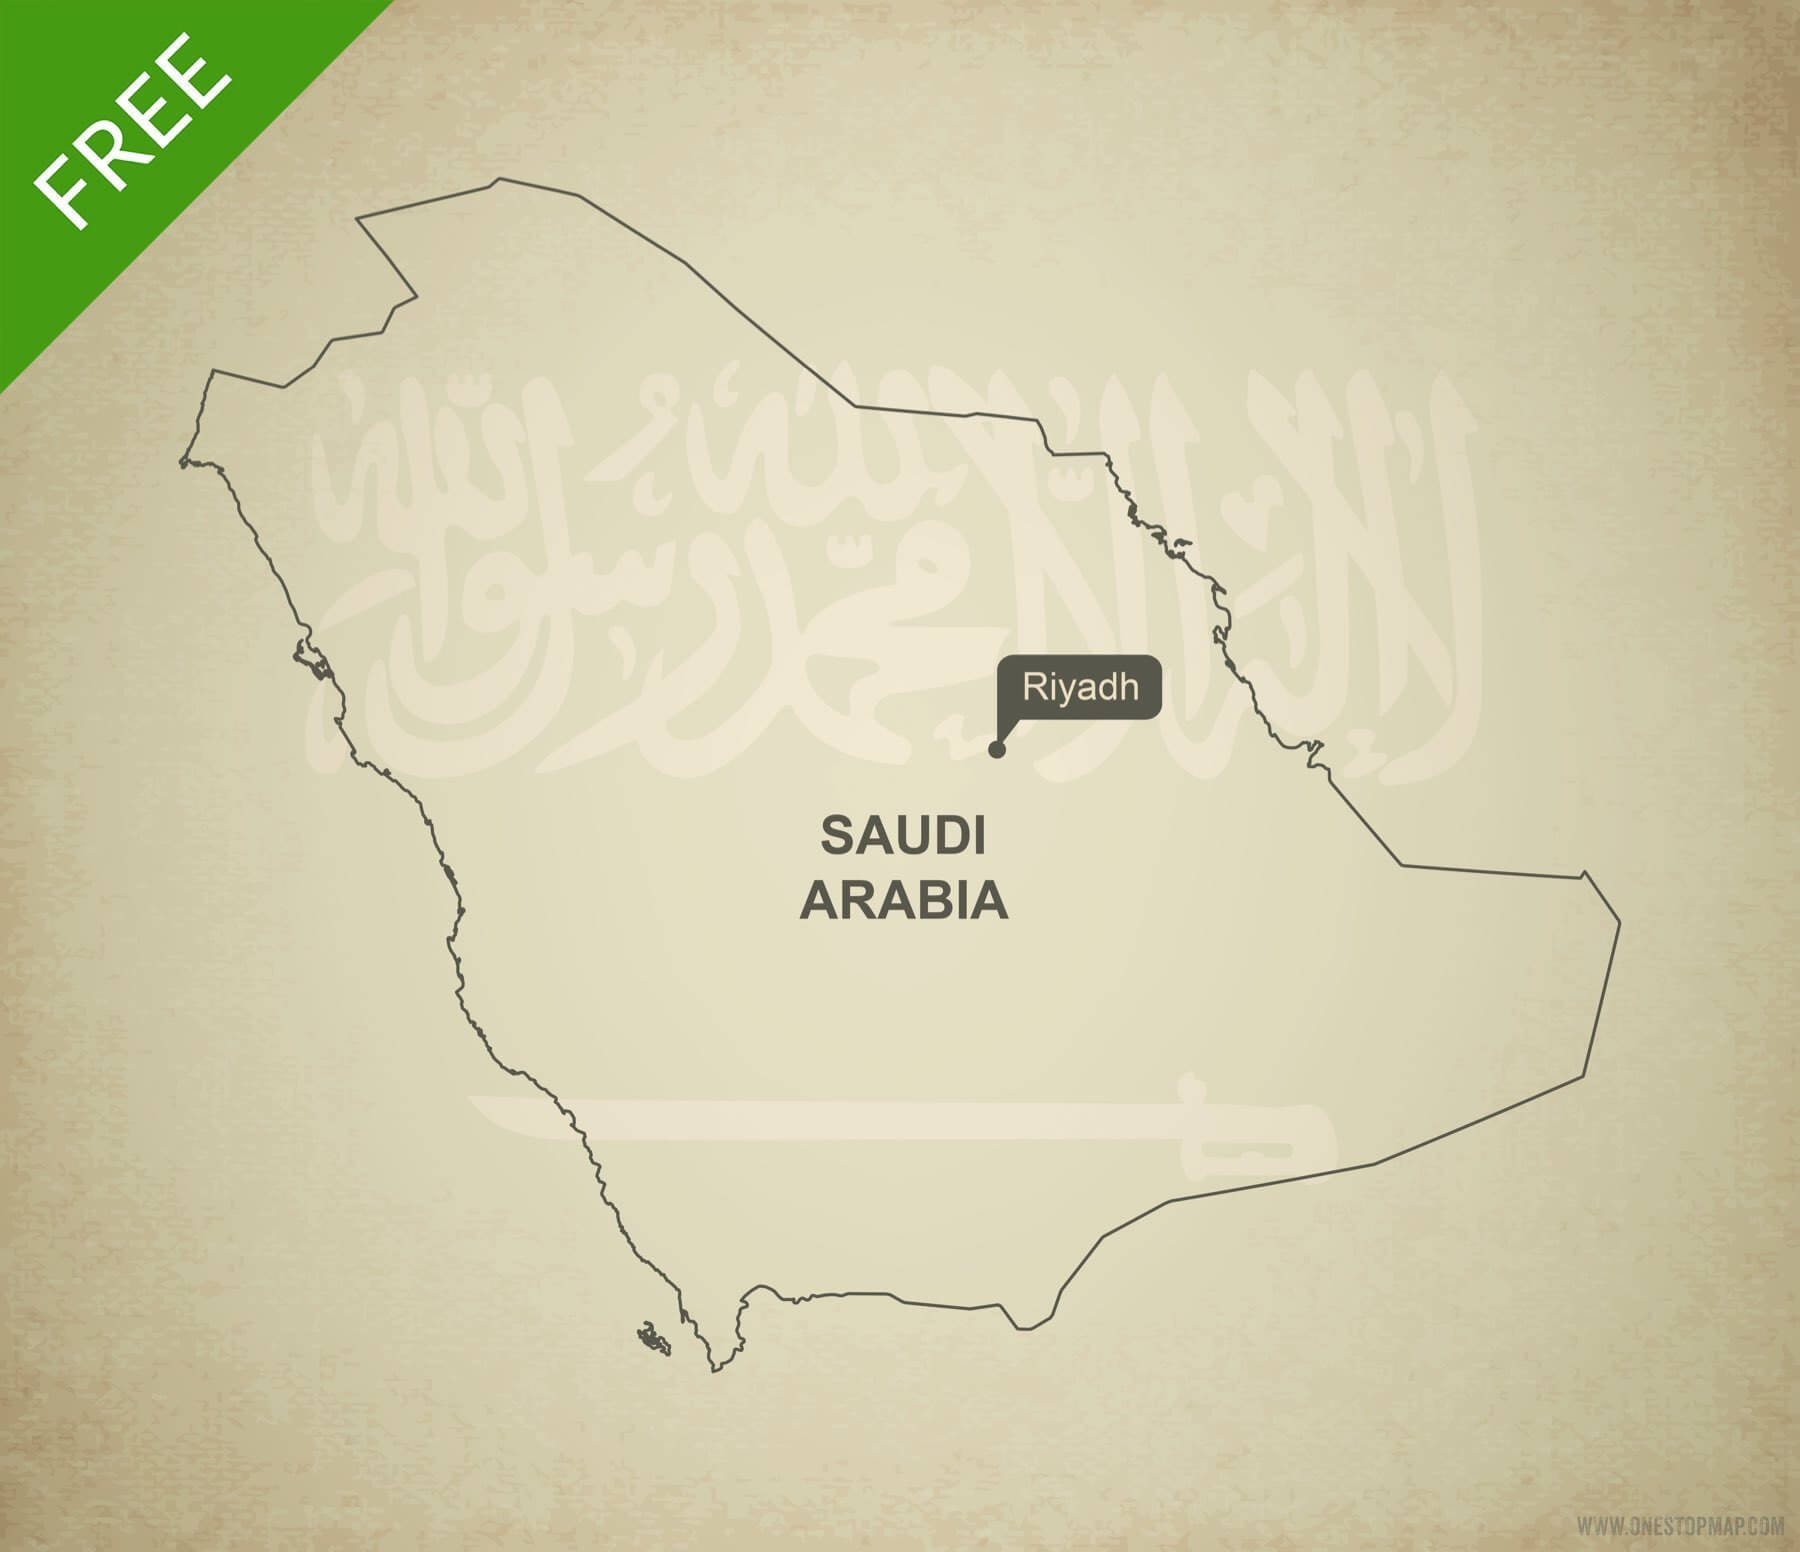 Free Vector Map of Saudi Arabia Outline   One Stop Map Free vector map of Saudi Arabia outline